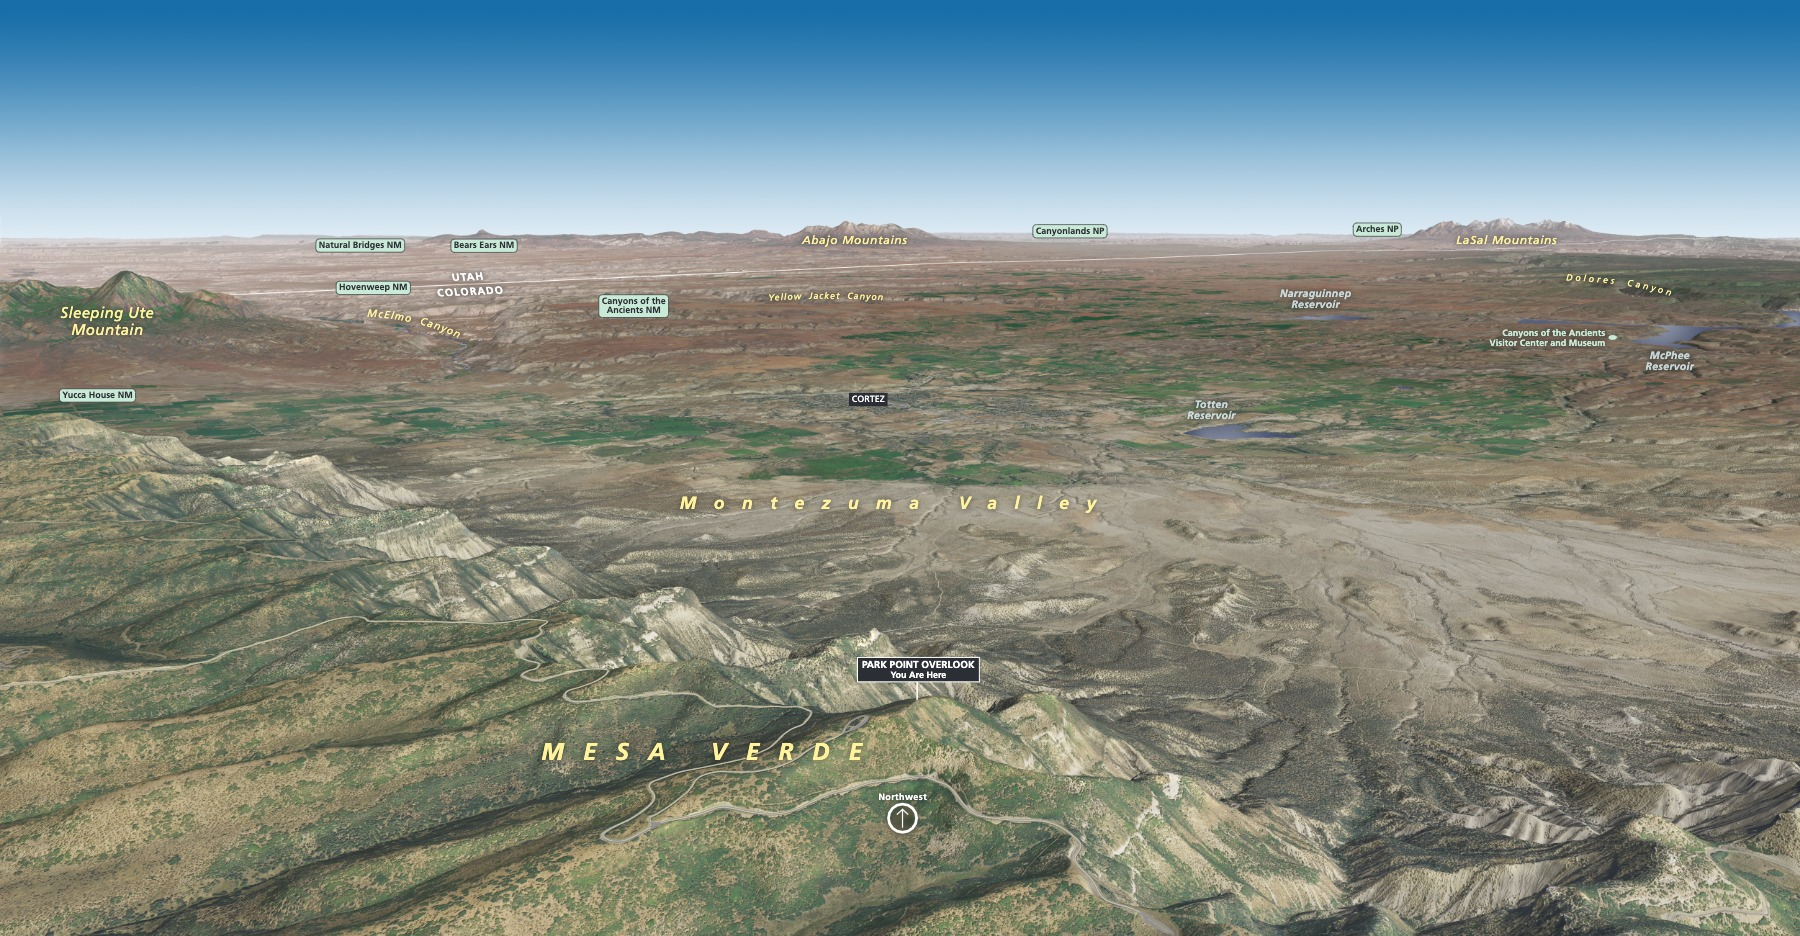 3D Panorama Map - Northwest View - From park wayside exhibit